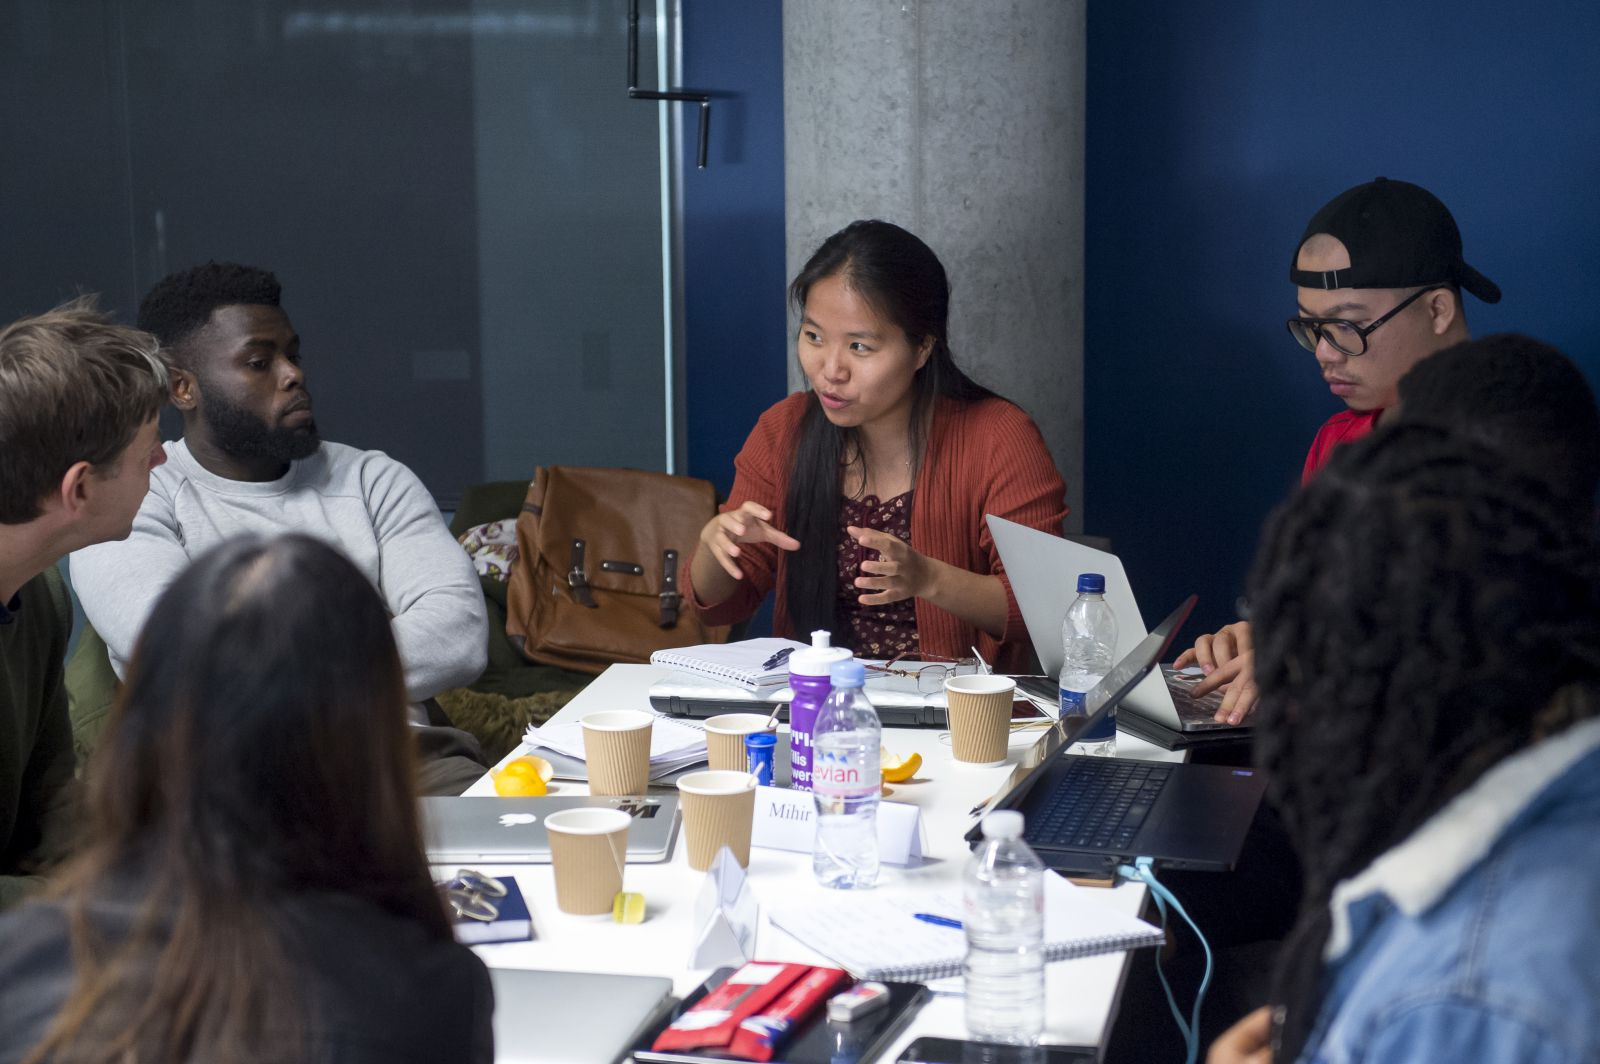 Students in the Department of Strategy and Marketing discuss ideas during a seminar in the Jubilee Building